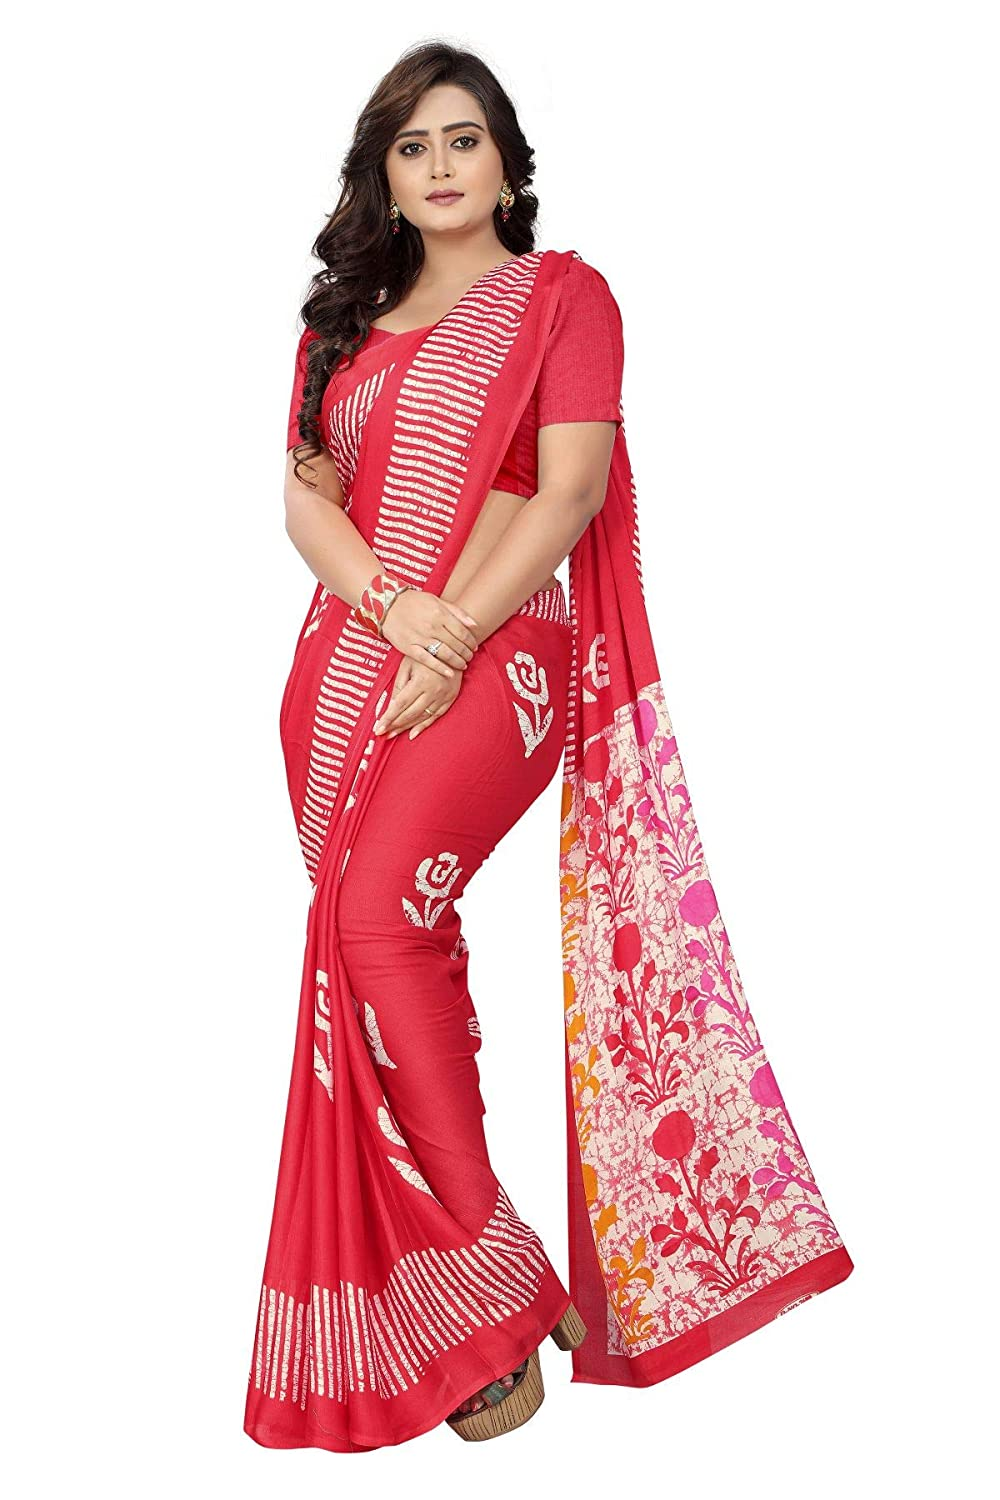 5820cb86a7 Jaanvi Fashion Women's Crepe Silk Printed Saree With Blouse (batik-print- pink): Amazon.in: Clothing & Accessories